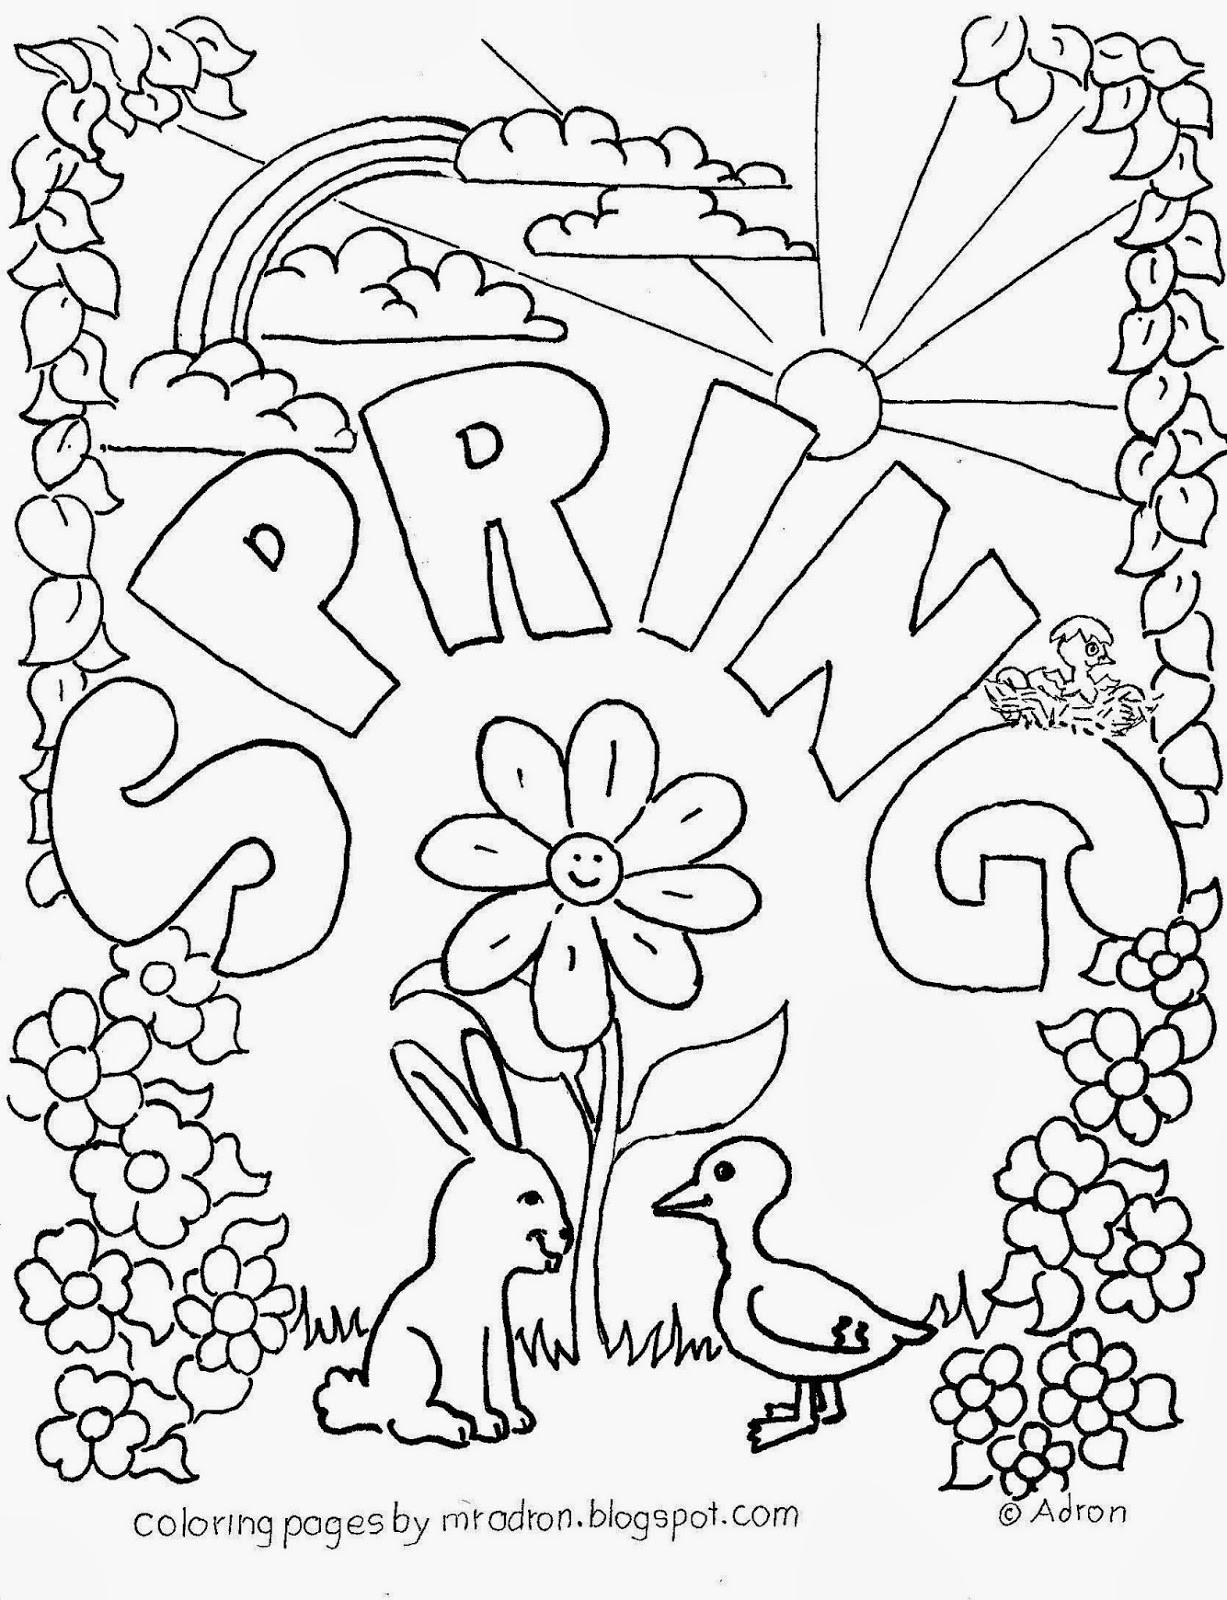 1227x1600 Happy Groundhog Day Coloring Pages For Kids Elegant First Day Free